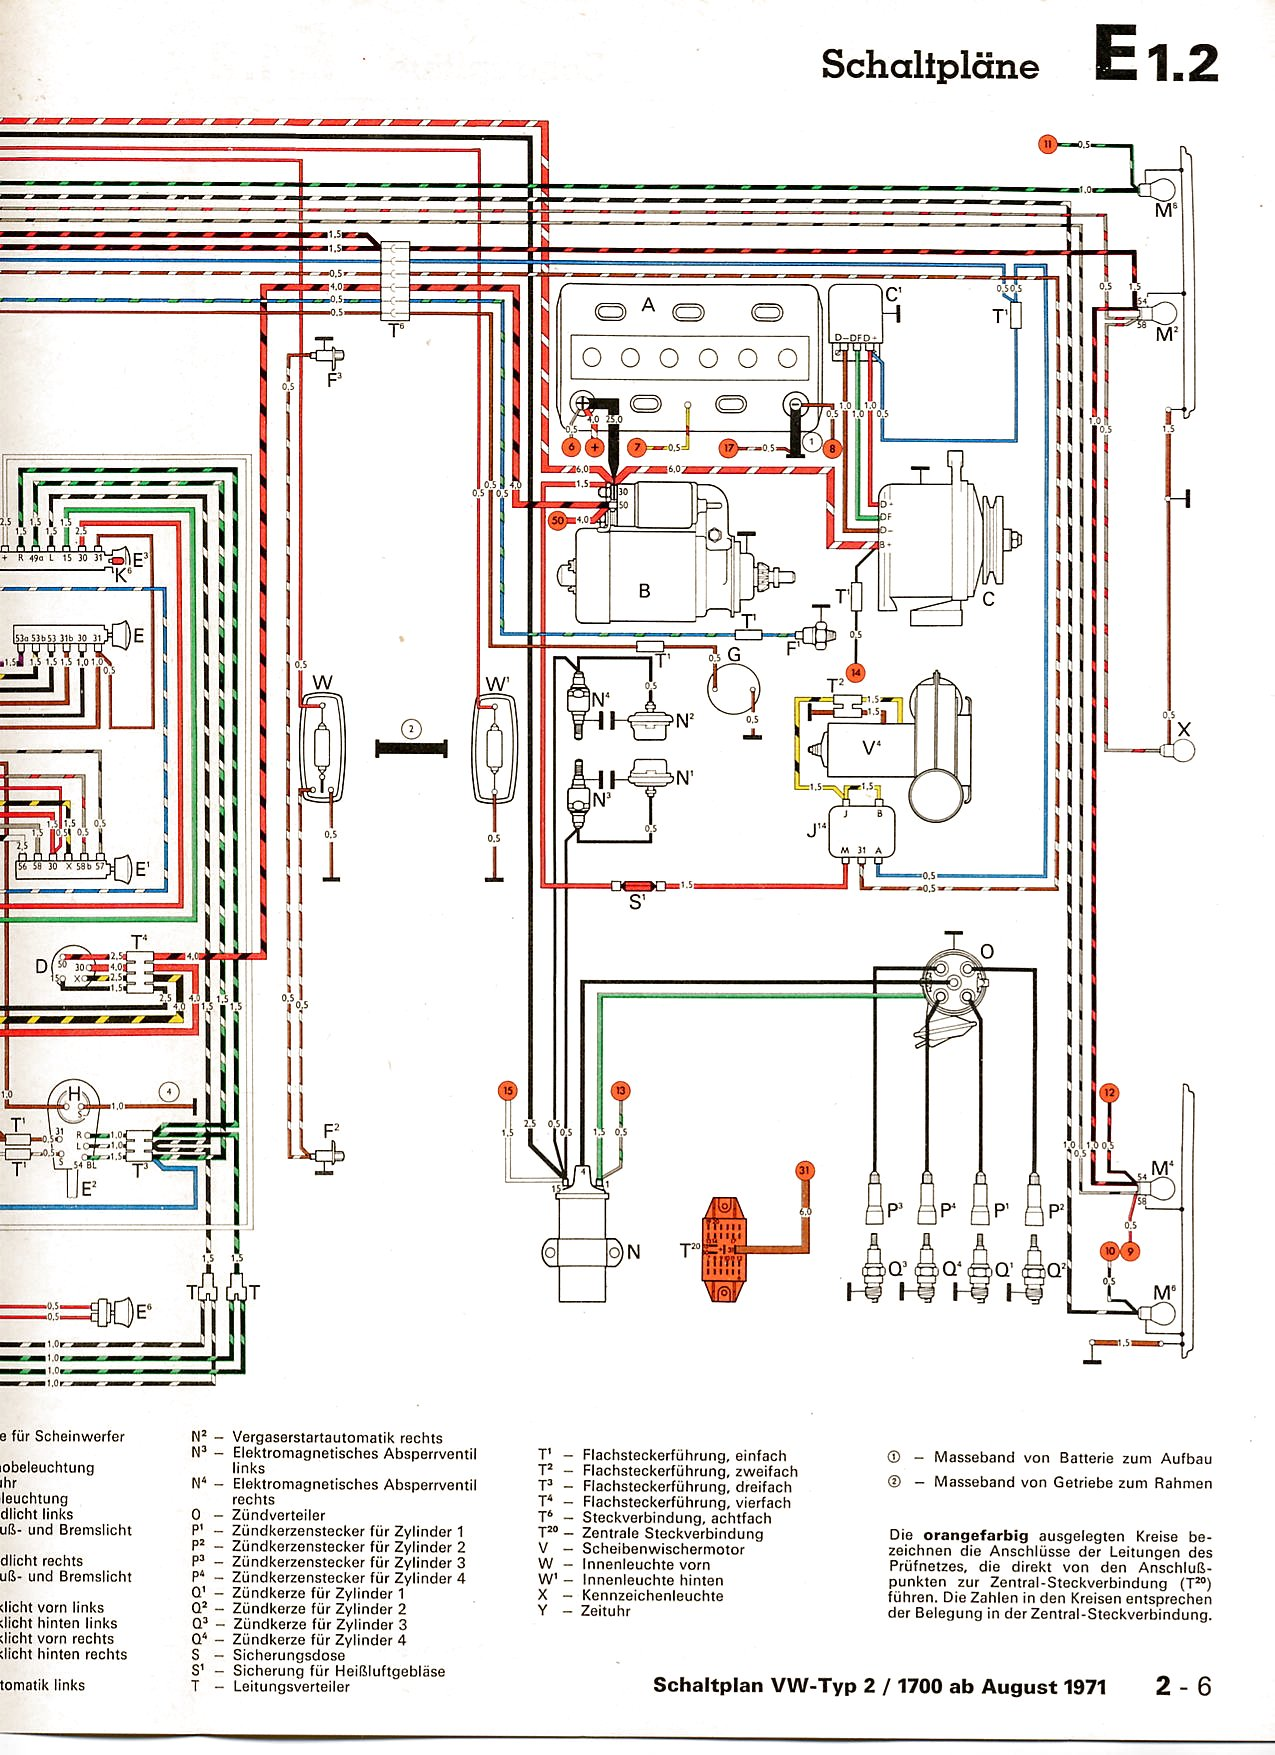 hight resolution of vw t2 wiring diagram 1973 schematic diagrams rh 11 fitness mit trampolin de type 1 vw engine diagram 2 0 vw type 2 engine diagram